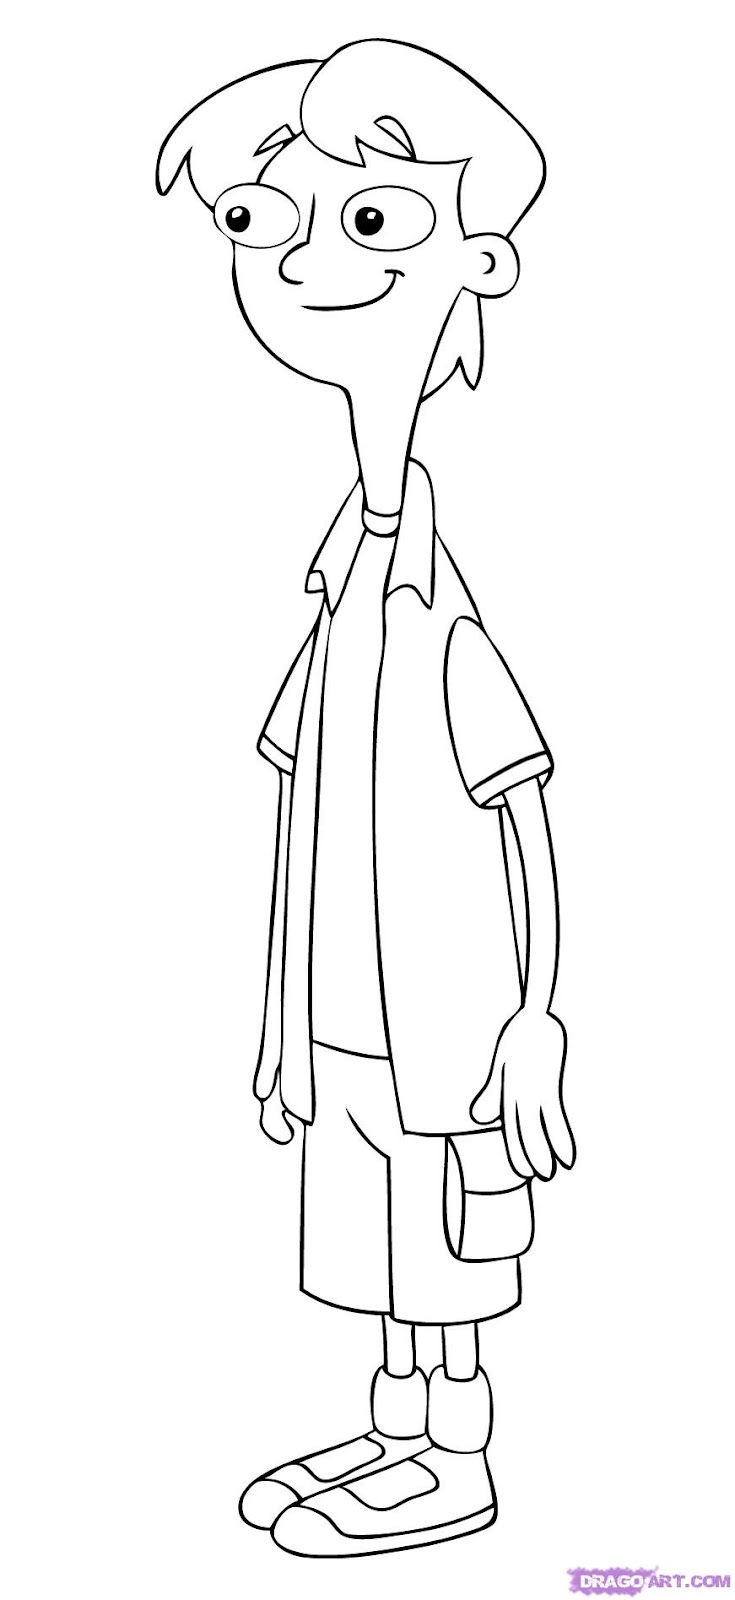 Phineas and ferb on Pinterest Coloring Pages, Perry The